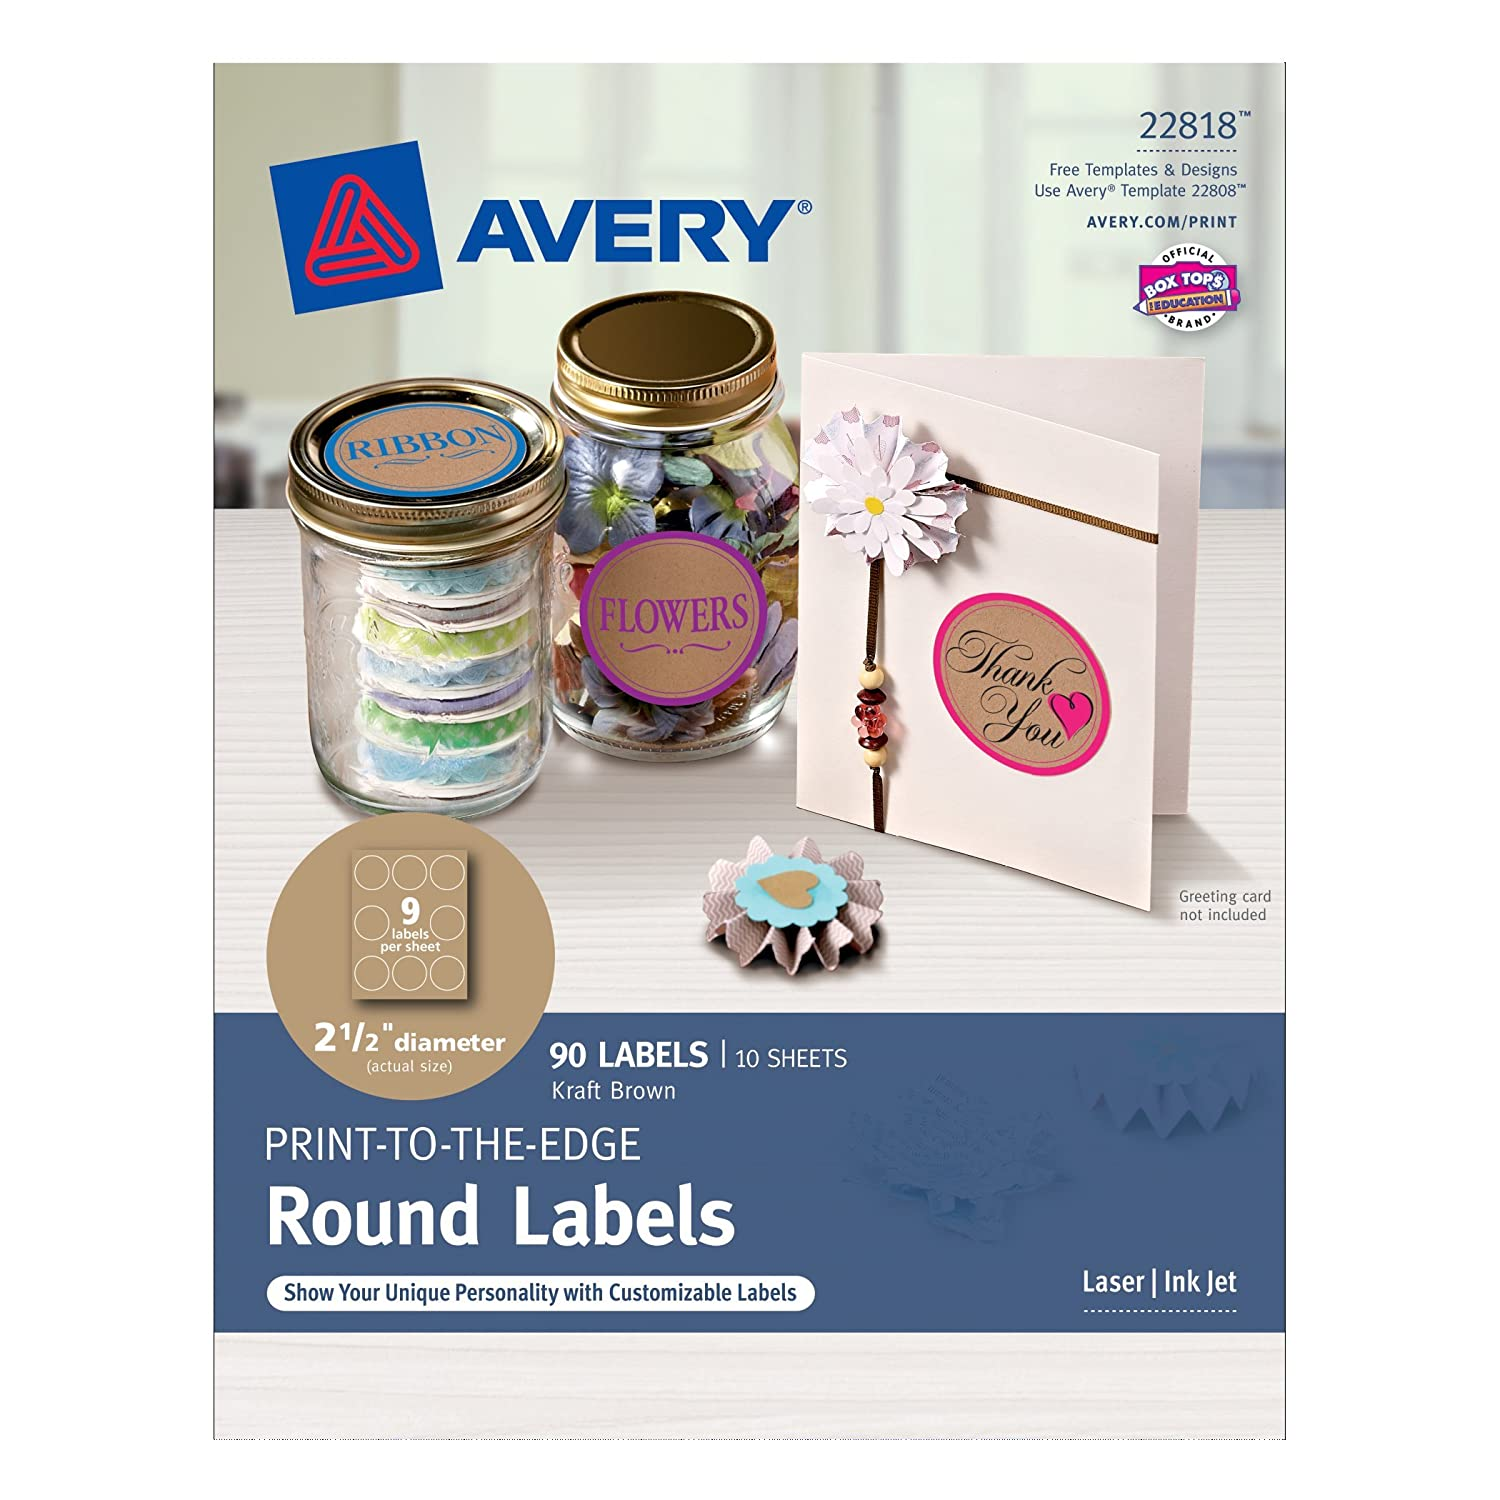 Amazoncom Avery PrinttotheEdge Round Labels Kraft Brown - Avery water bottle template